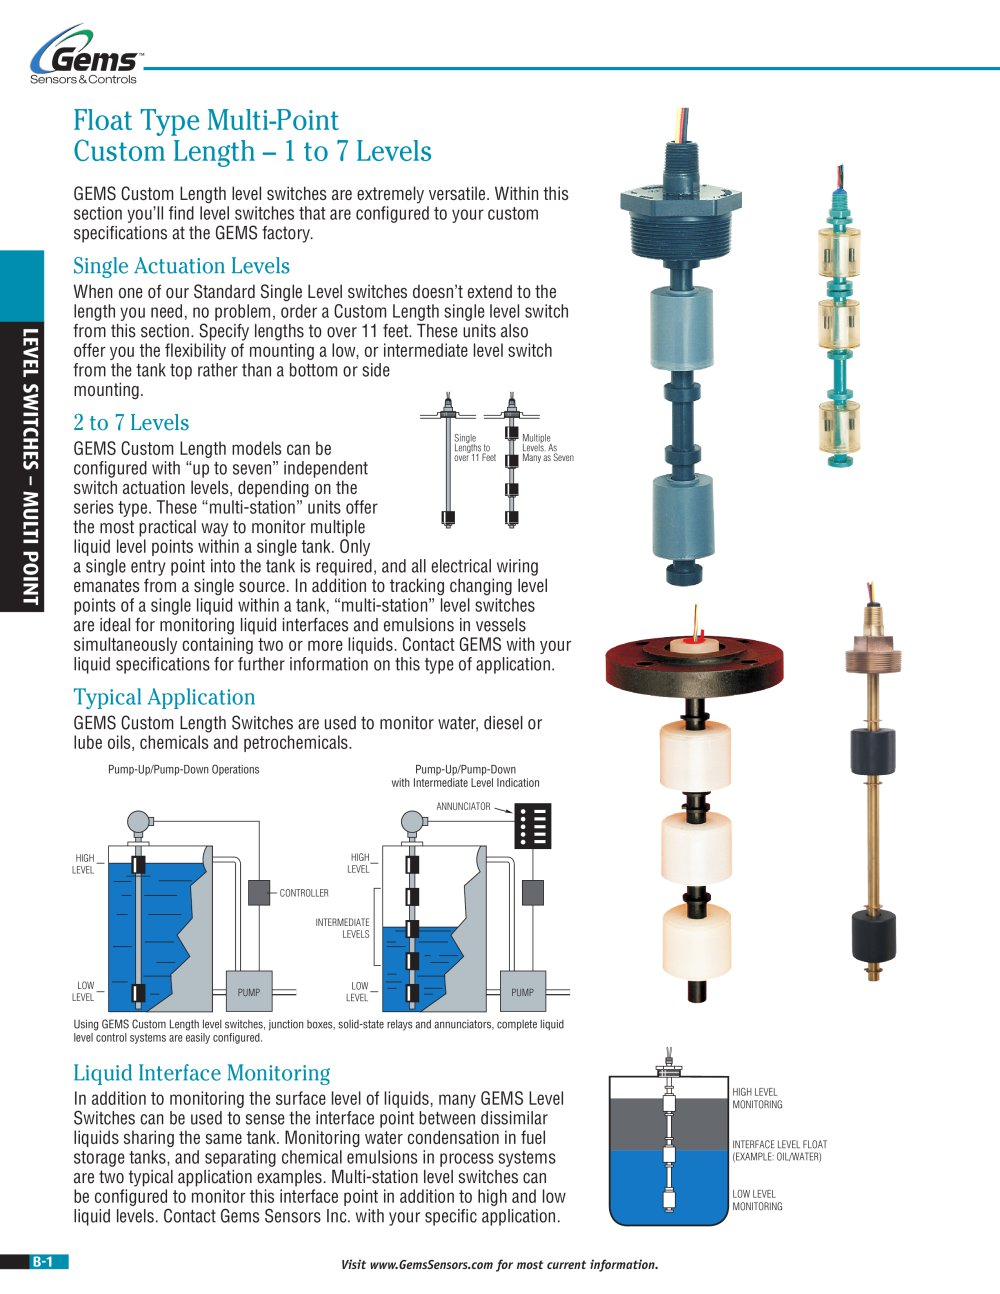 Level Switches Multi Point Gems Sensors Pdf Catalogues Solidstaterelaysanpdf 1 26 Pages